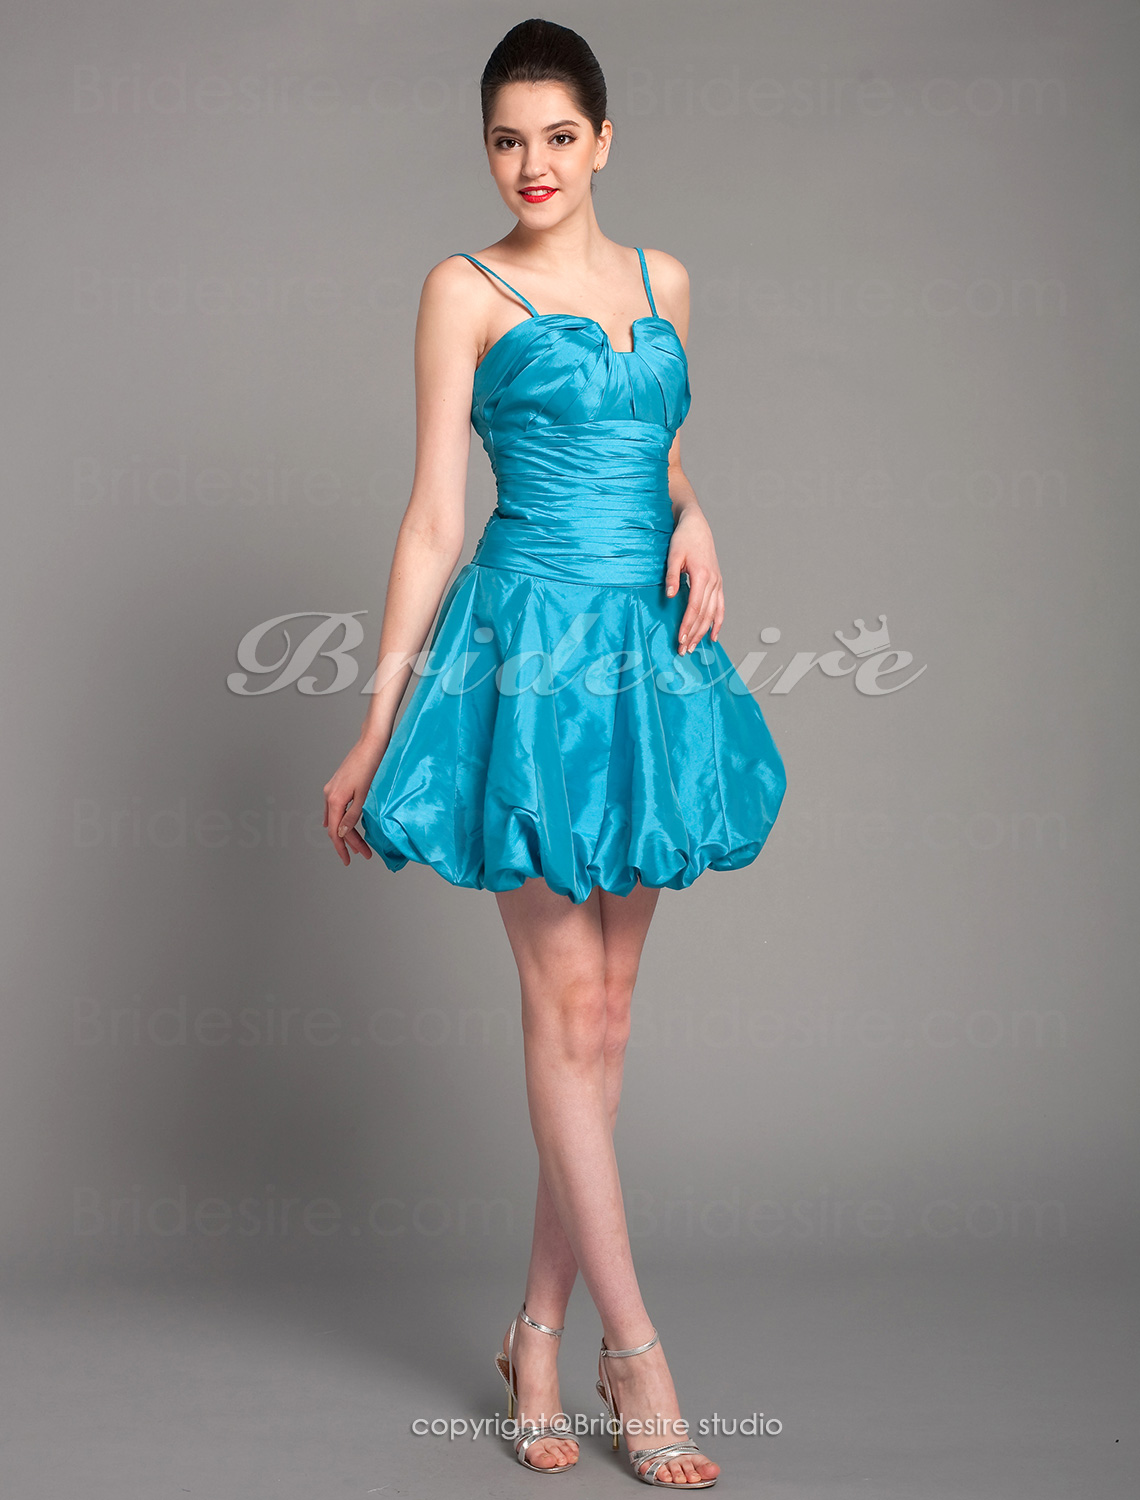 A-line Taffeta Short/Mini Strapless Cocktail Dress